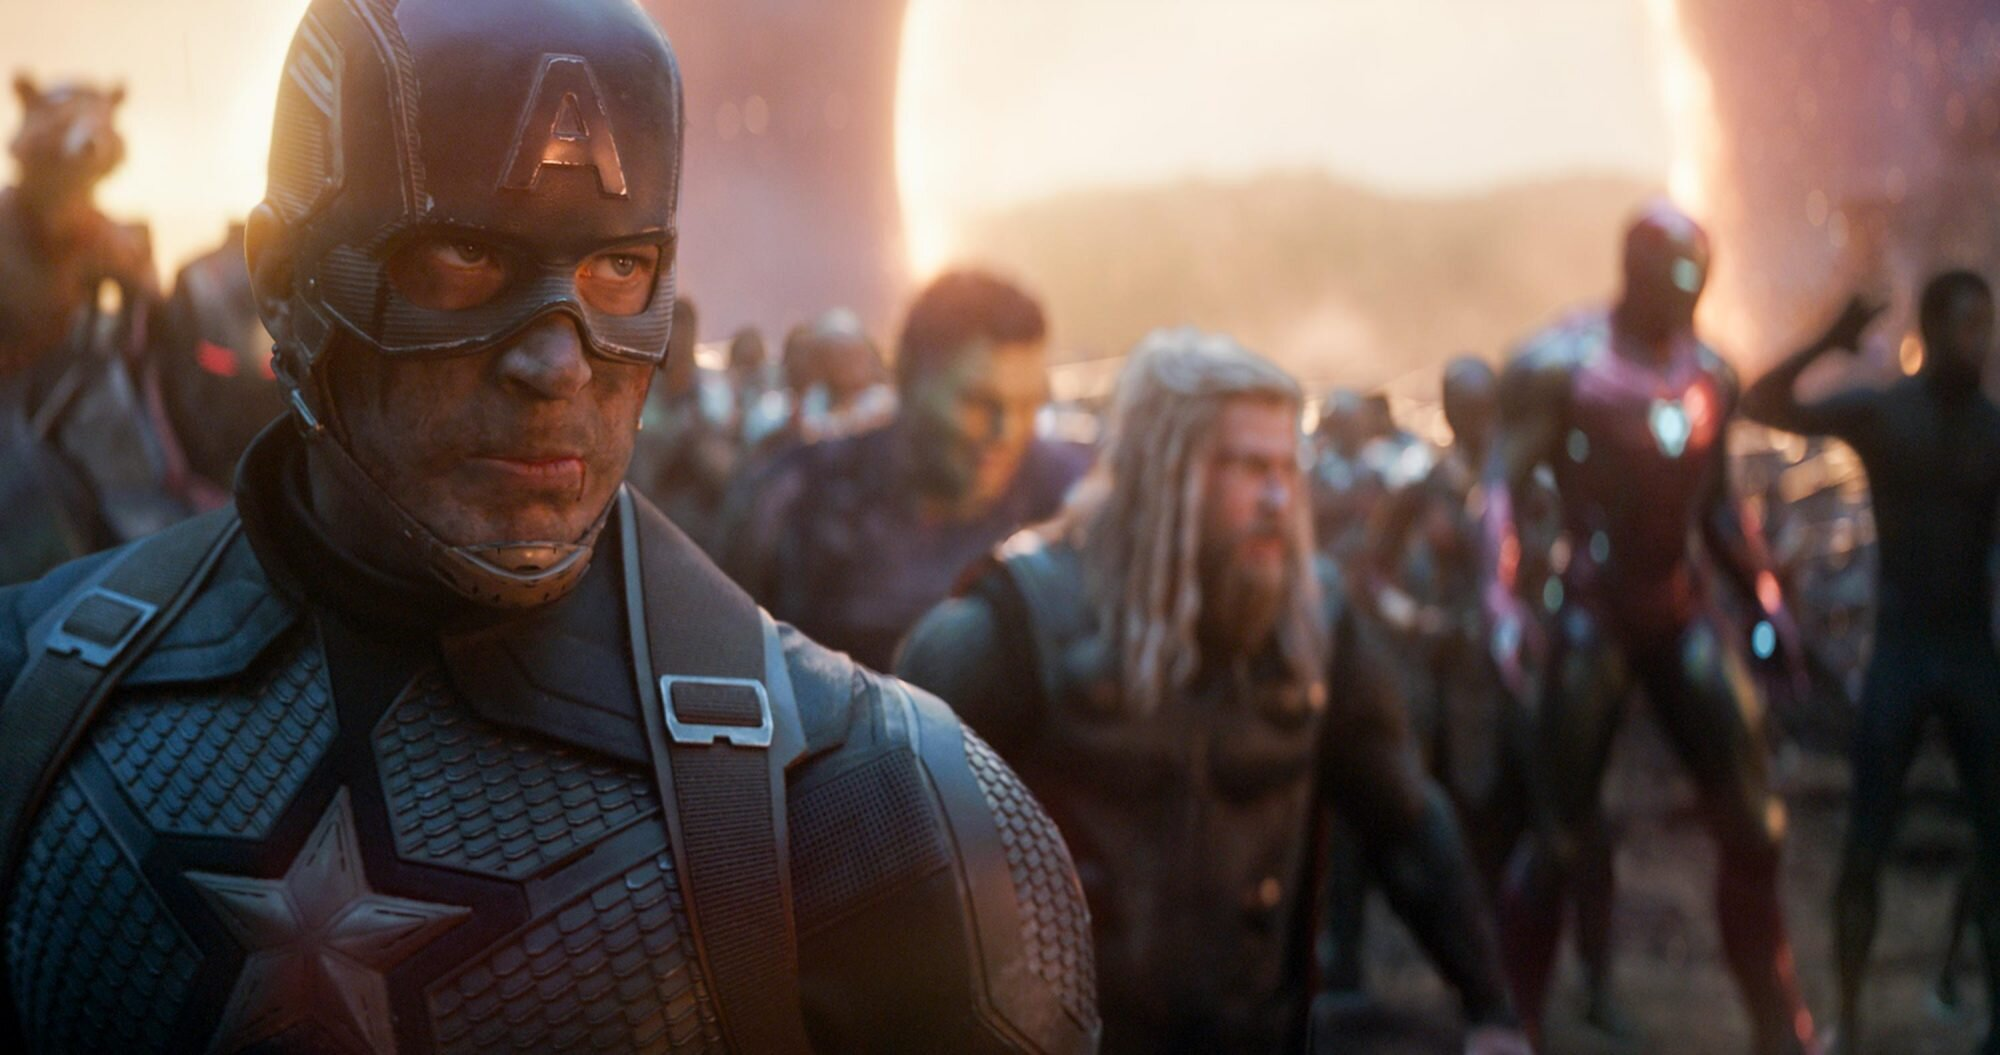 Avengers: Endgame rerelease bringing Spider-Man sneak peek, deleted scene |  EW.com